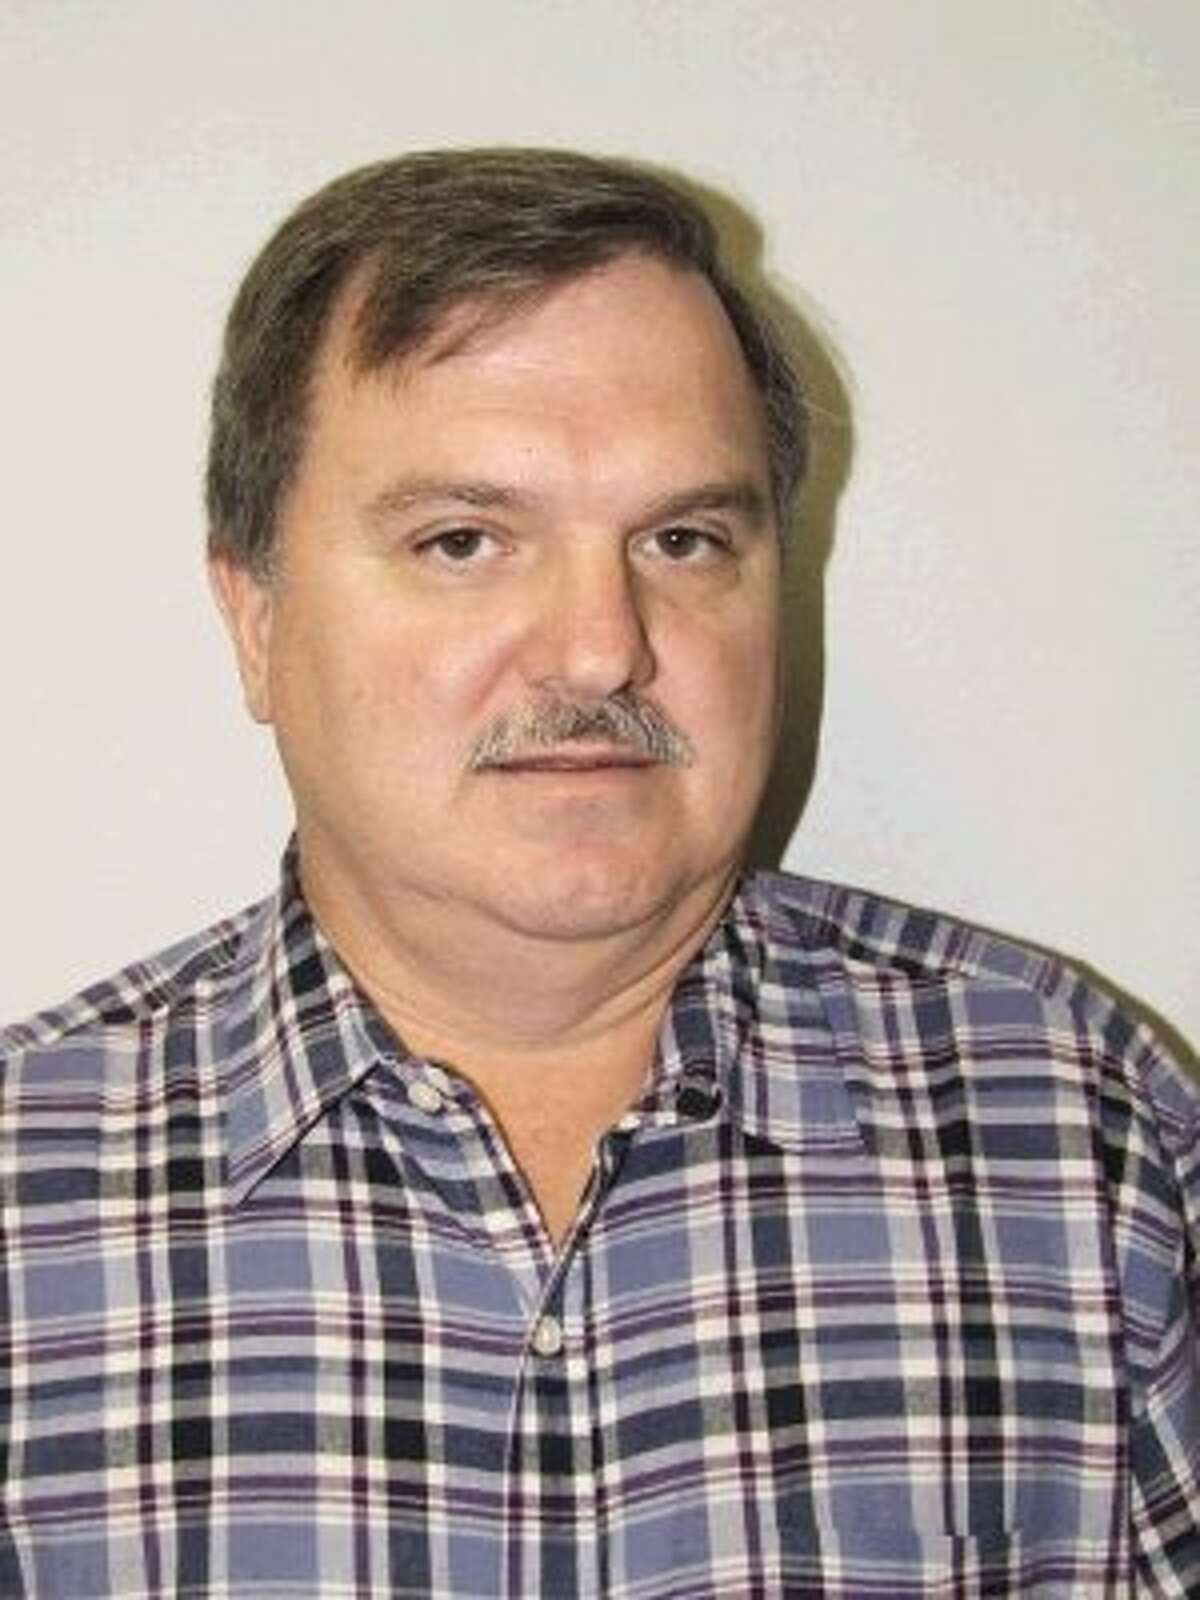 Jim Molony is print editor for The Bay Area Citizen, The Friendswood and Pearland Journals, The Pasadena Citizen and The Deer Park Broadcaster.